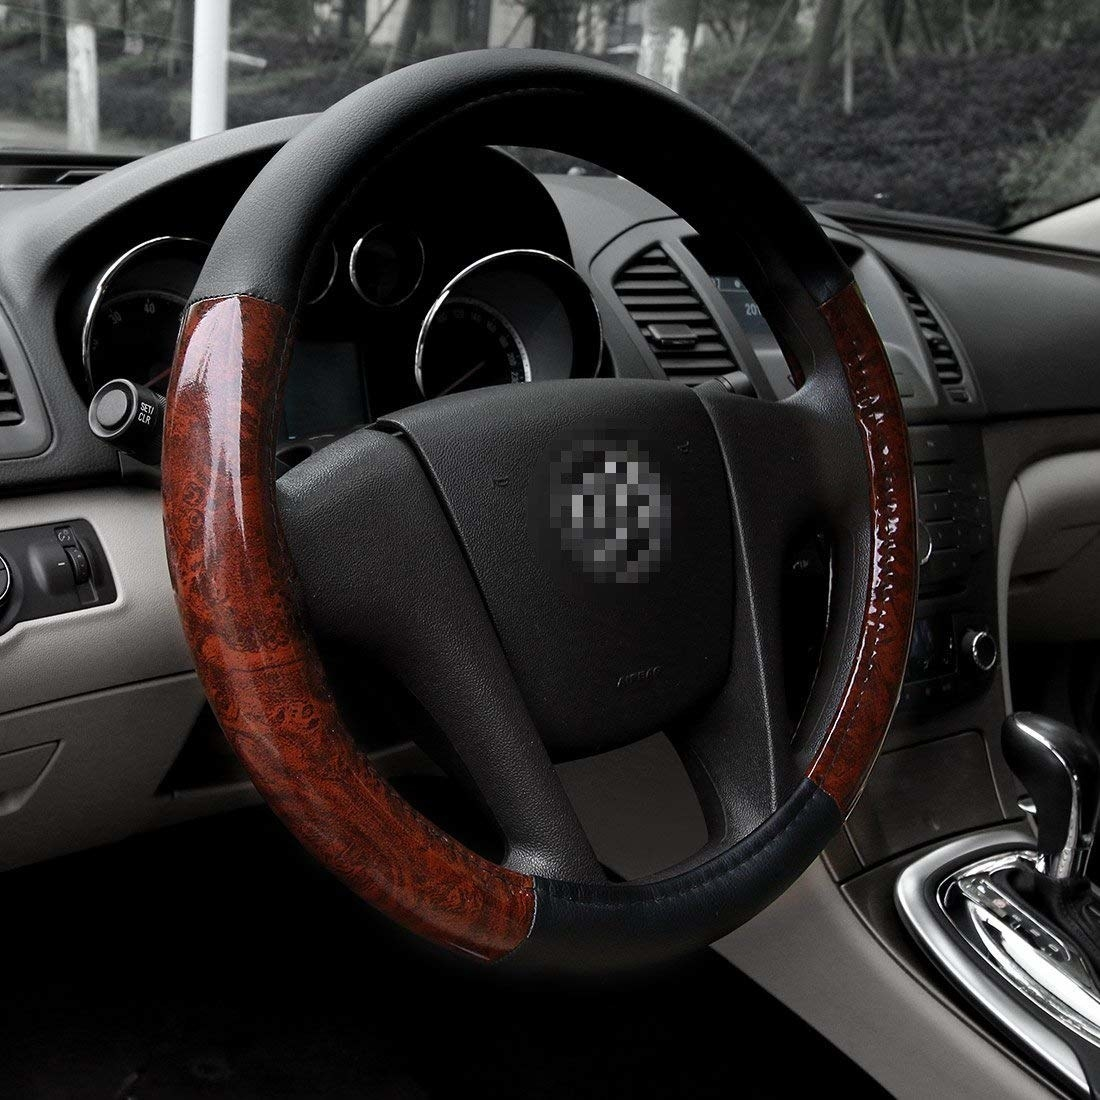 A steering wheel with the wood grain cover